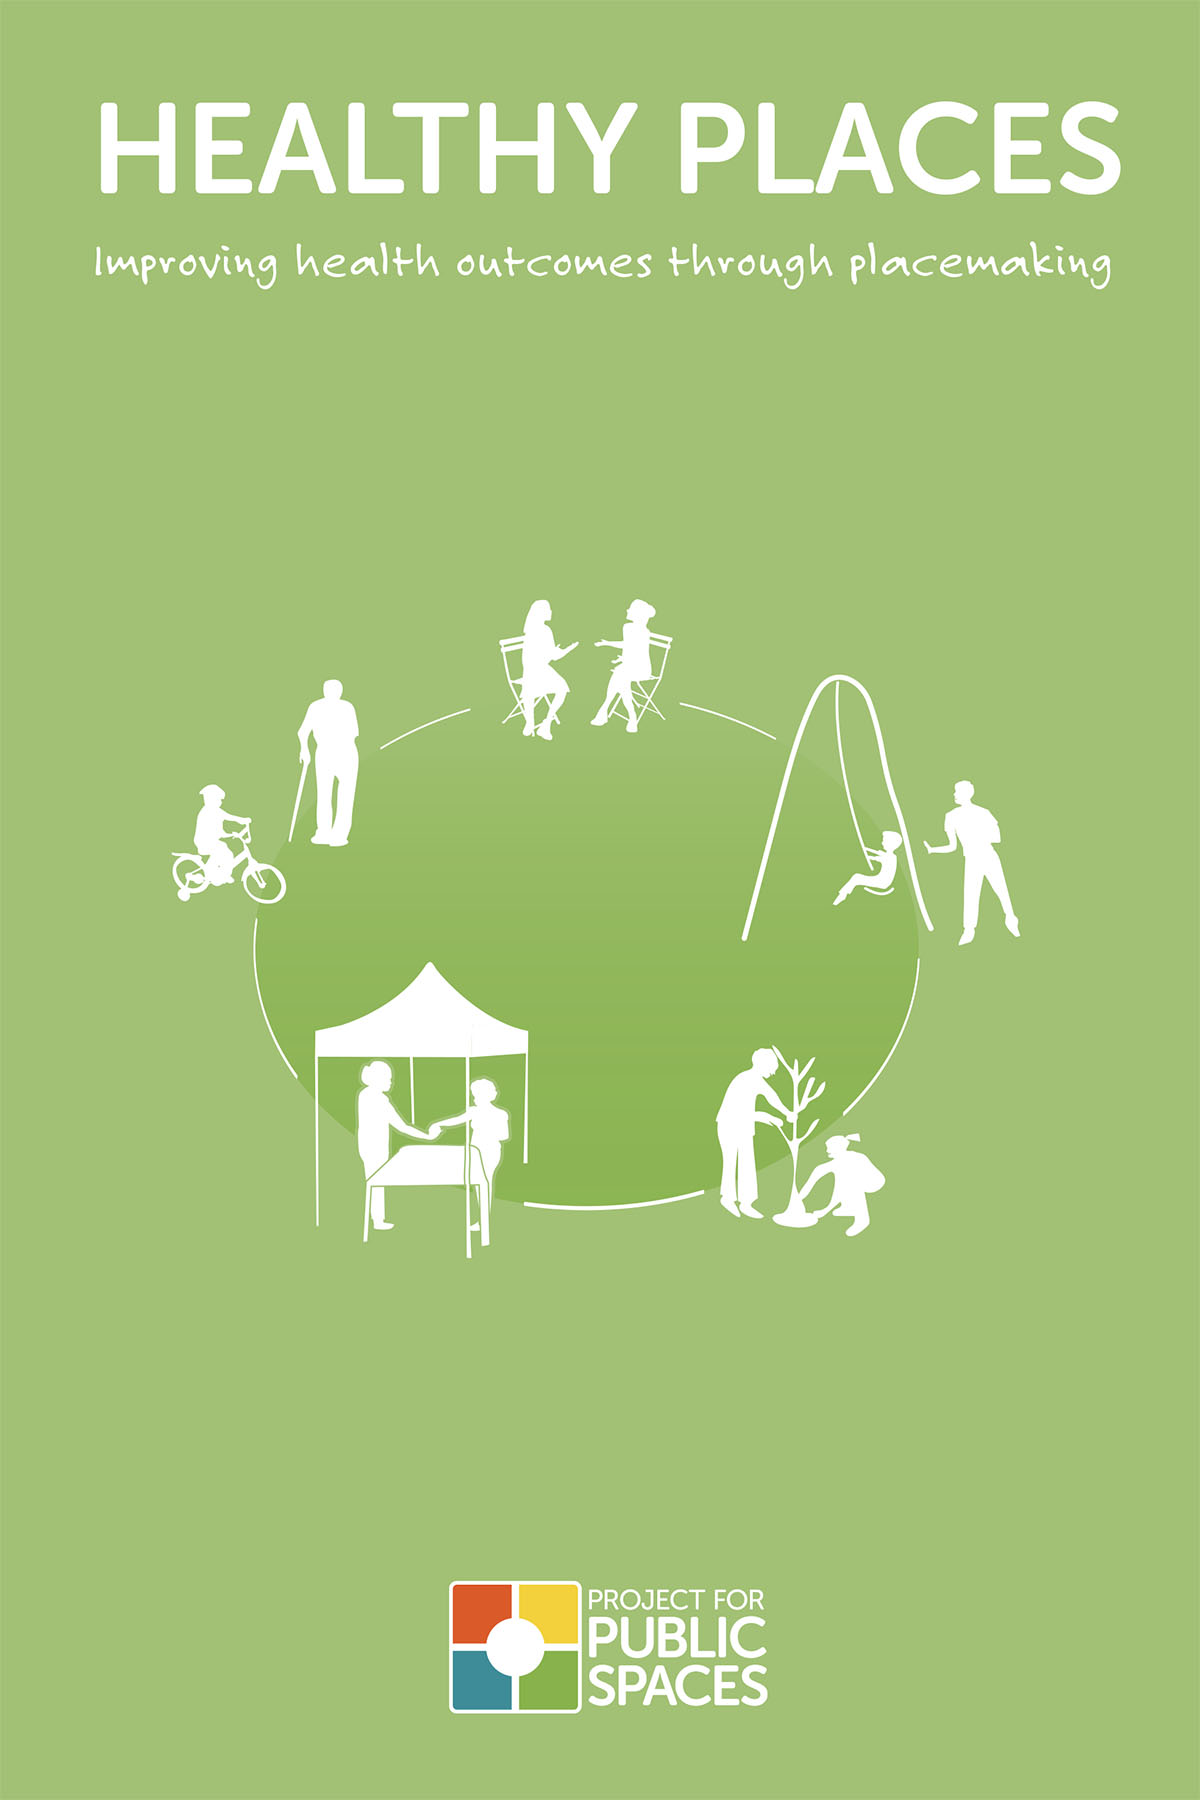 The Case for Healthy Places